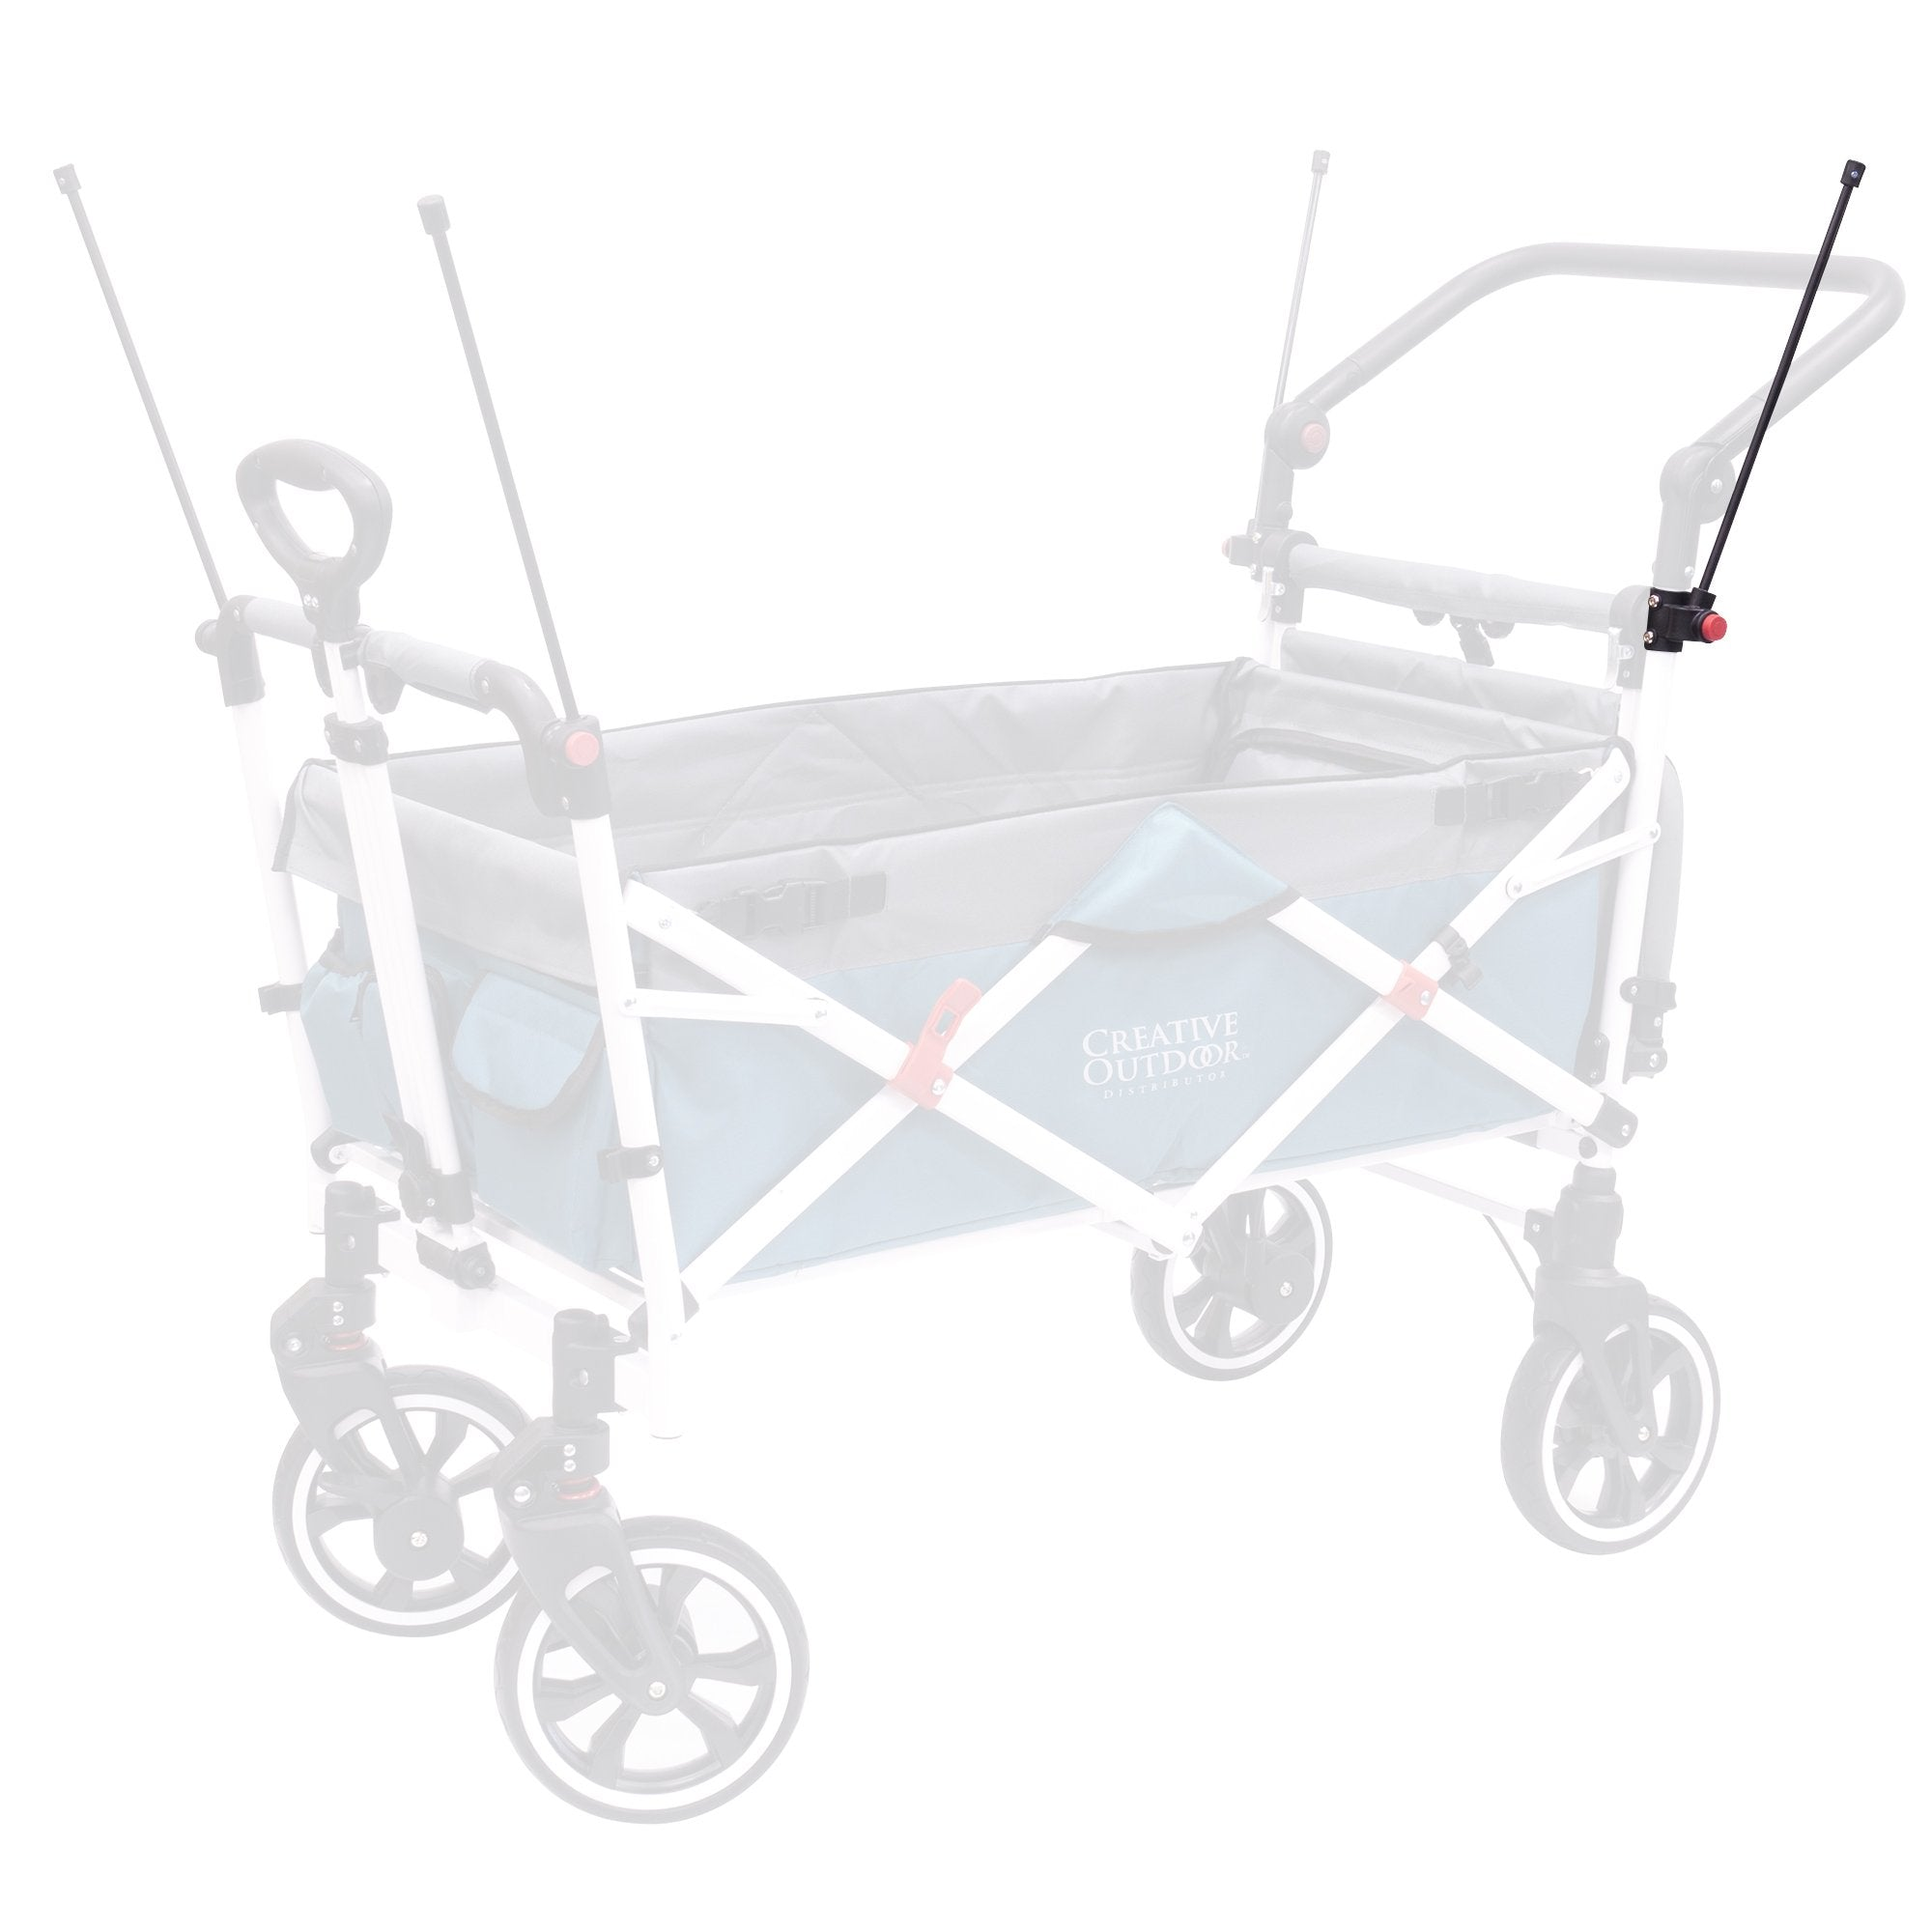 Push Pull Folding Stroller Wagon Canopy Rod Replacement | Rear Left